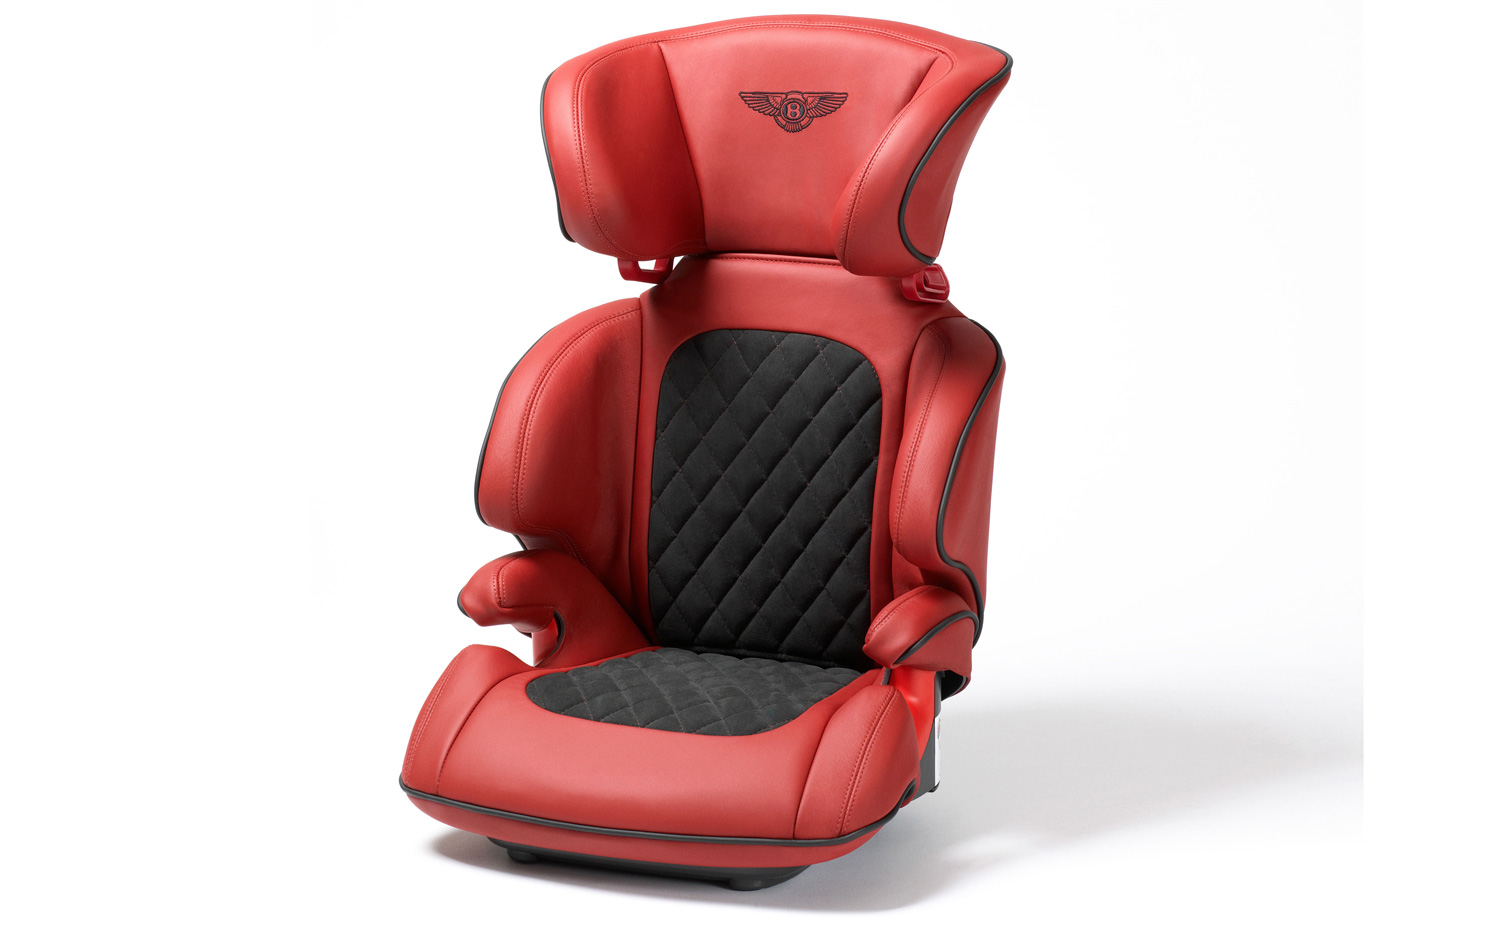 bentley releases new baby seat and more for its well heeled owners